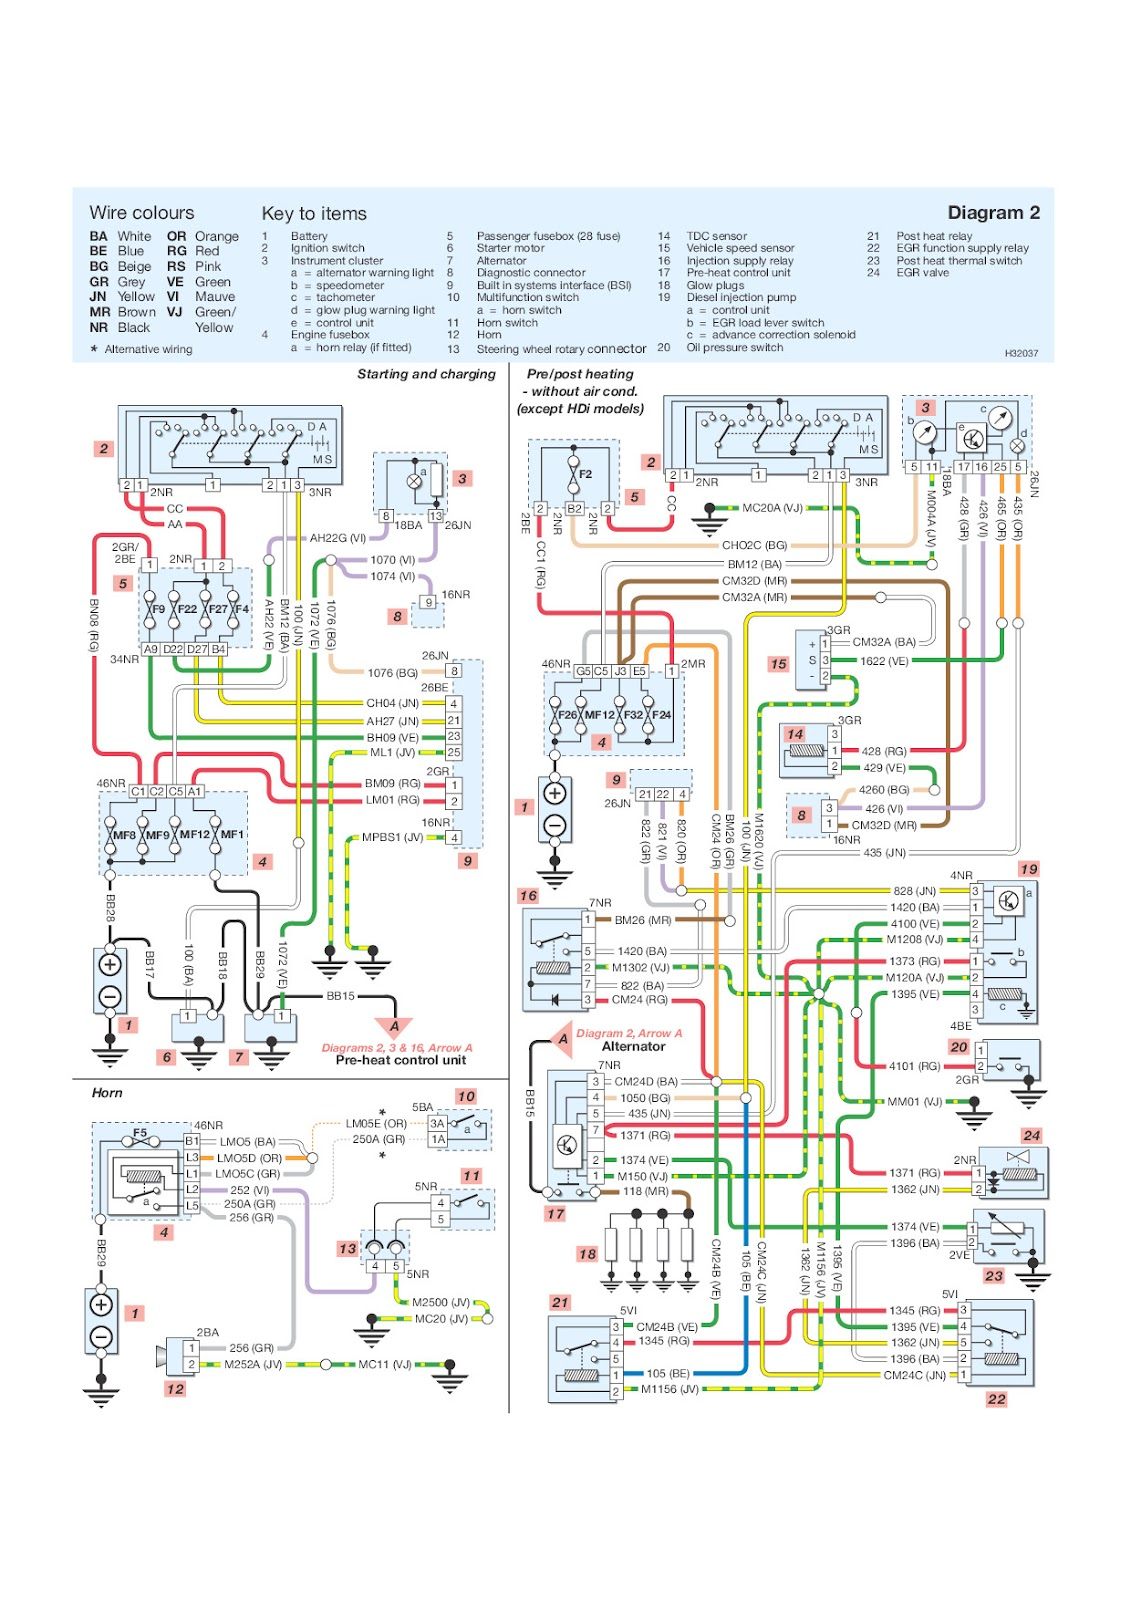 your wiring diagrams source peugeot 206 starting charging horn alternator wiring diagram peugeot 206 ignition wiring diagram [ 1131 x 1600 Pixel ]